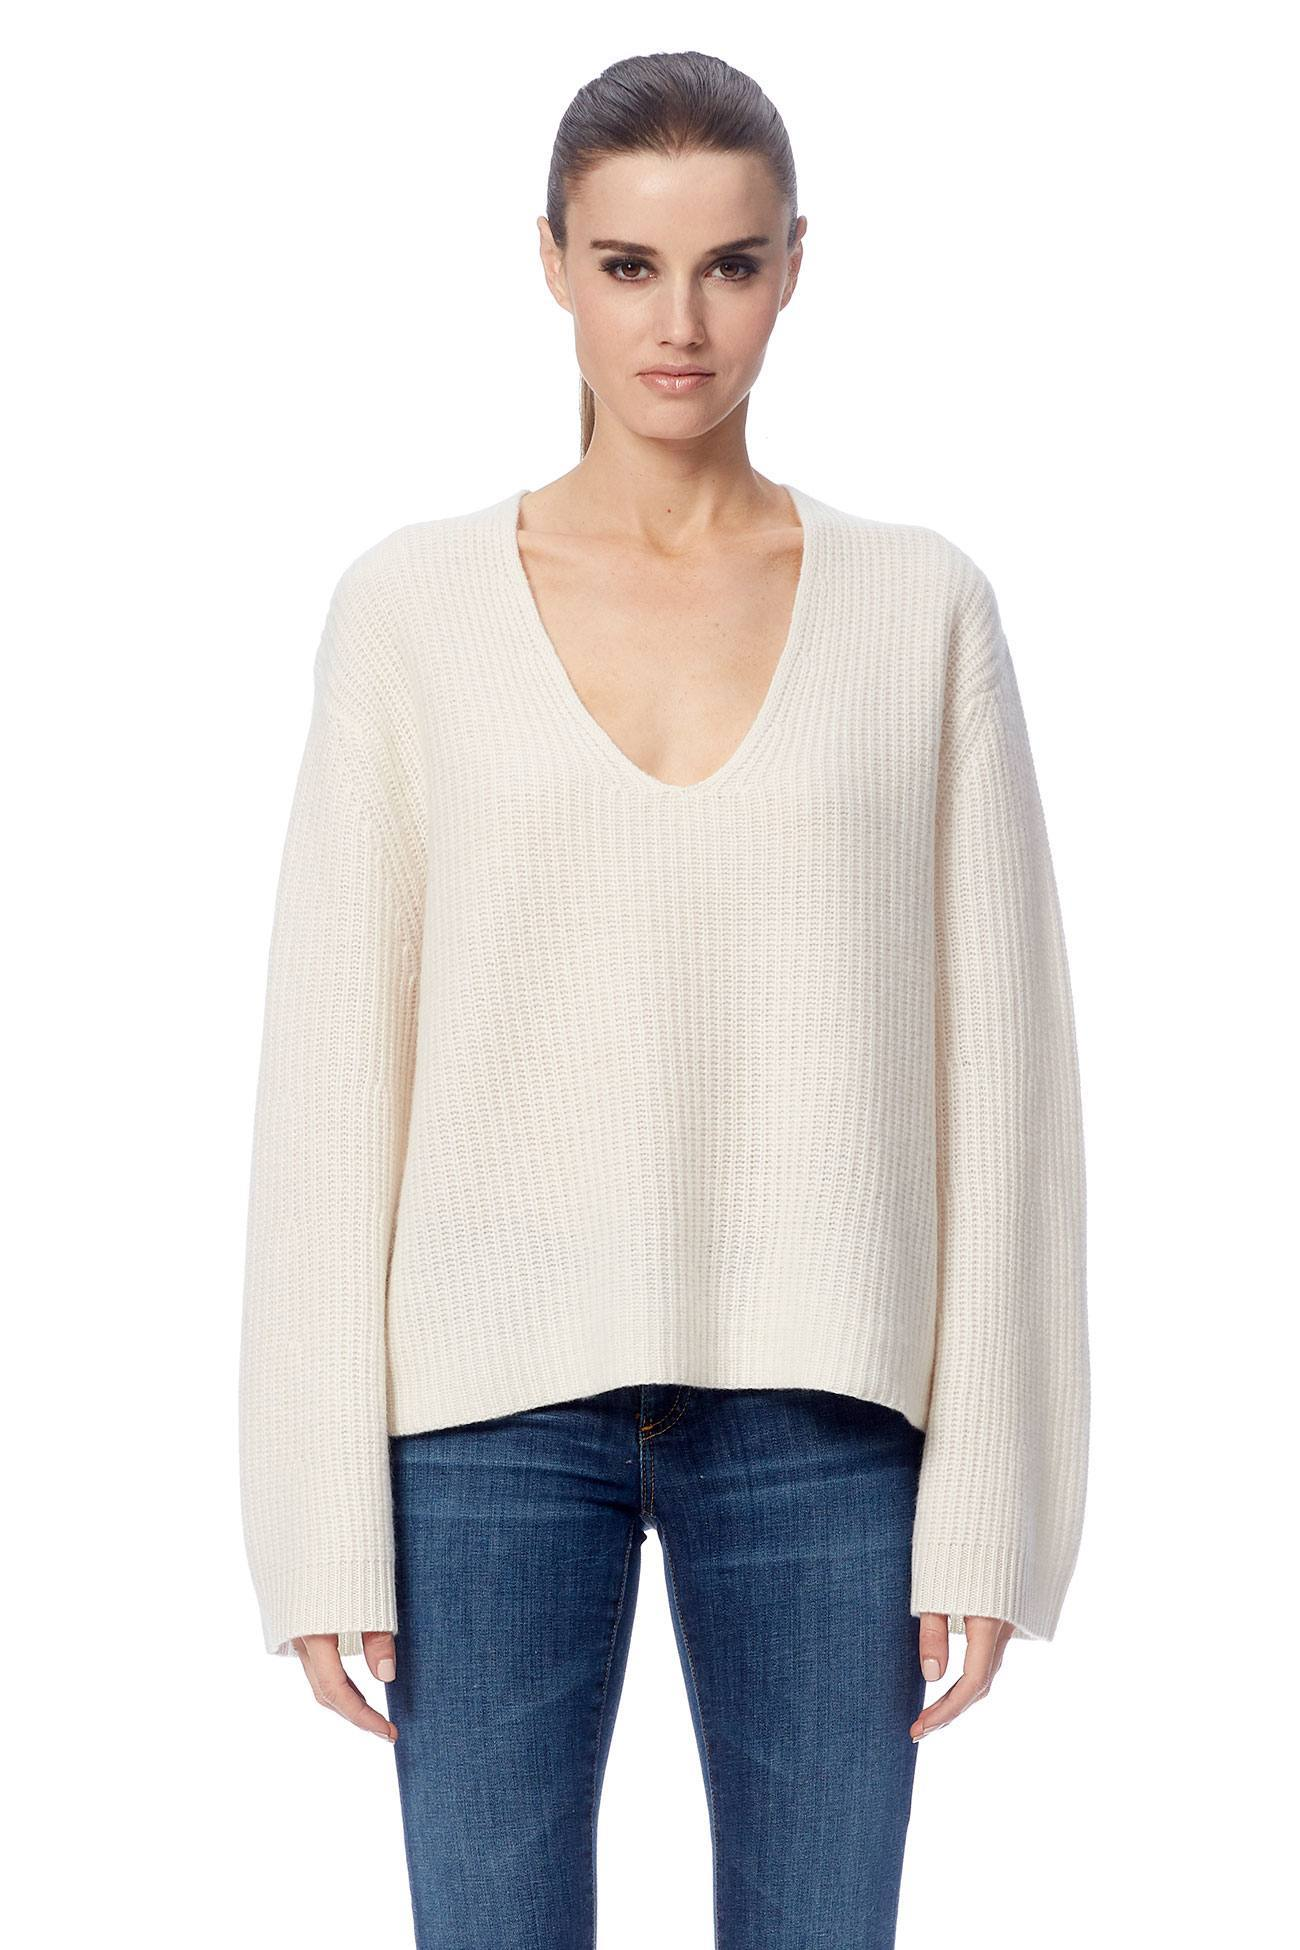 Reese V-Neck Sweater - White